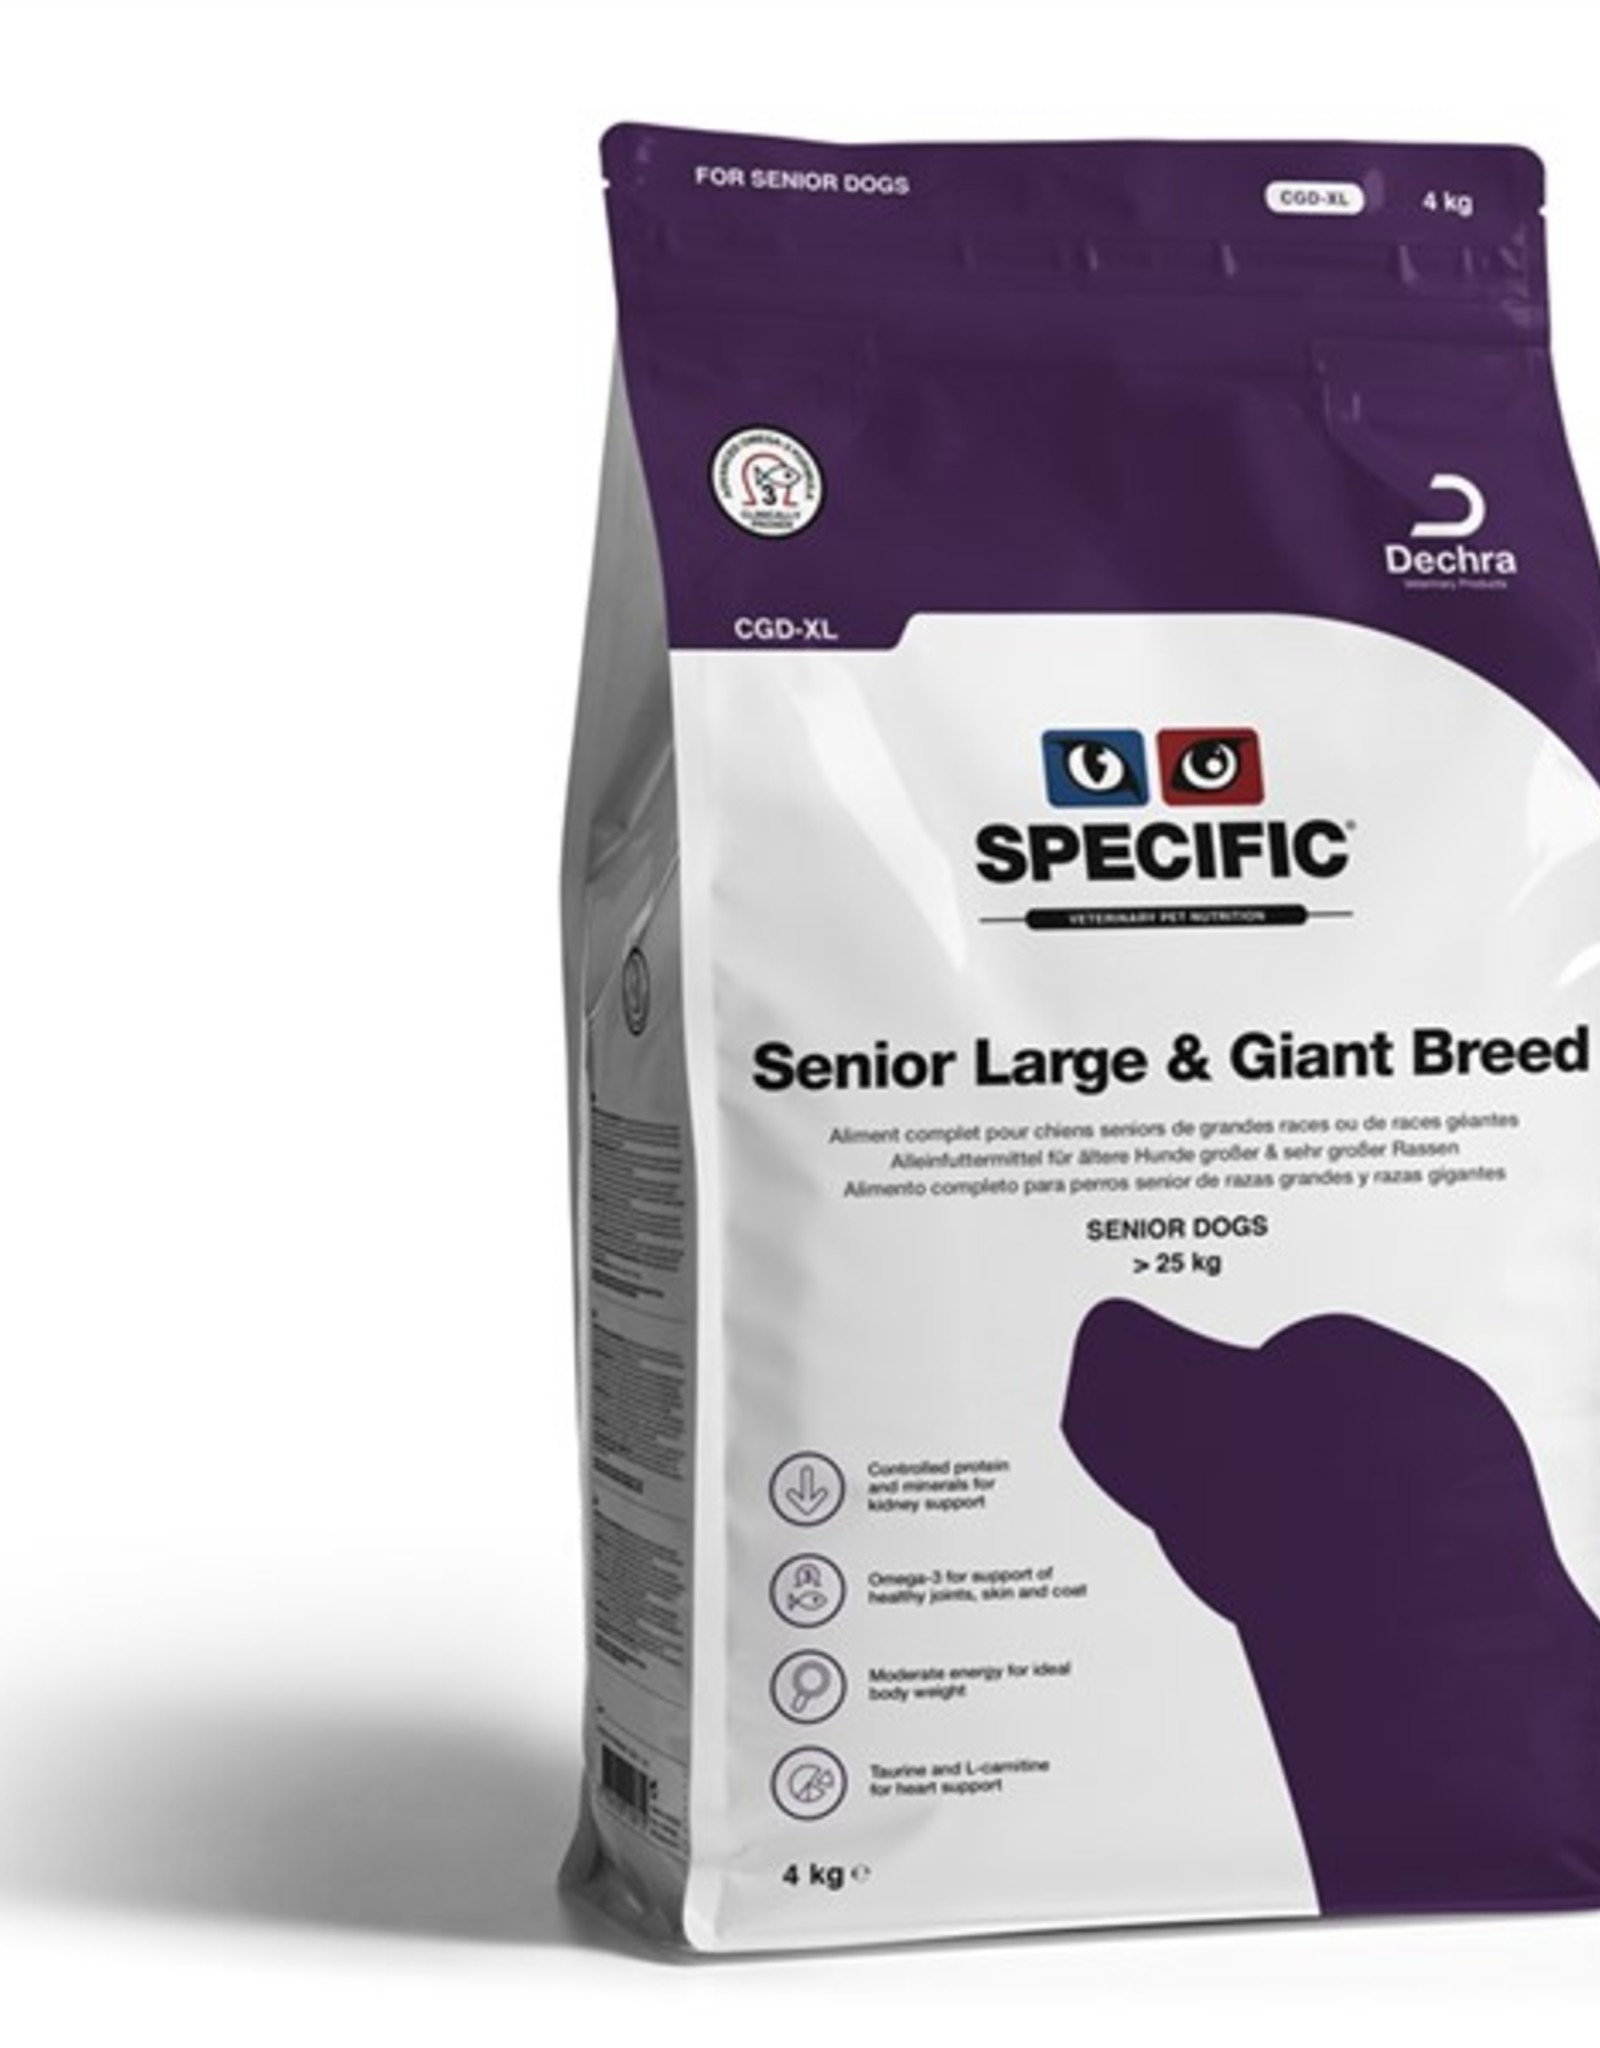 Specific Specific Cgd-xl Senior Large Giant 4kg